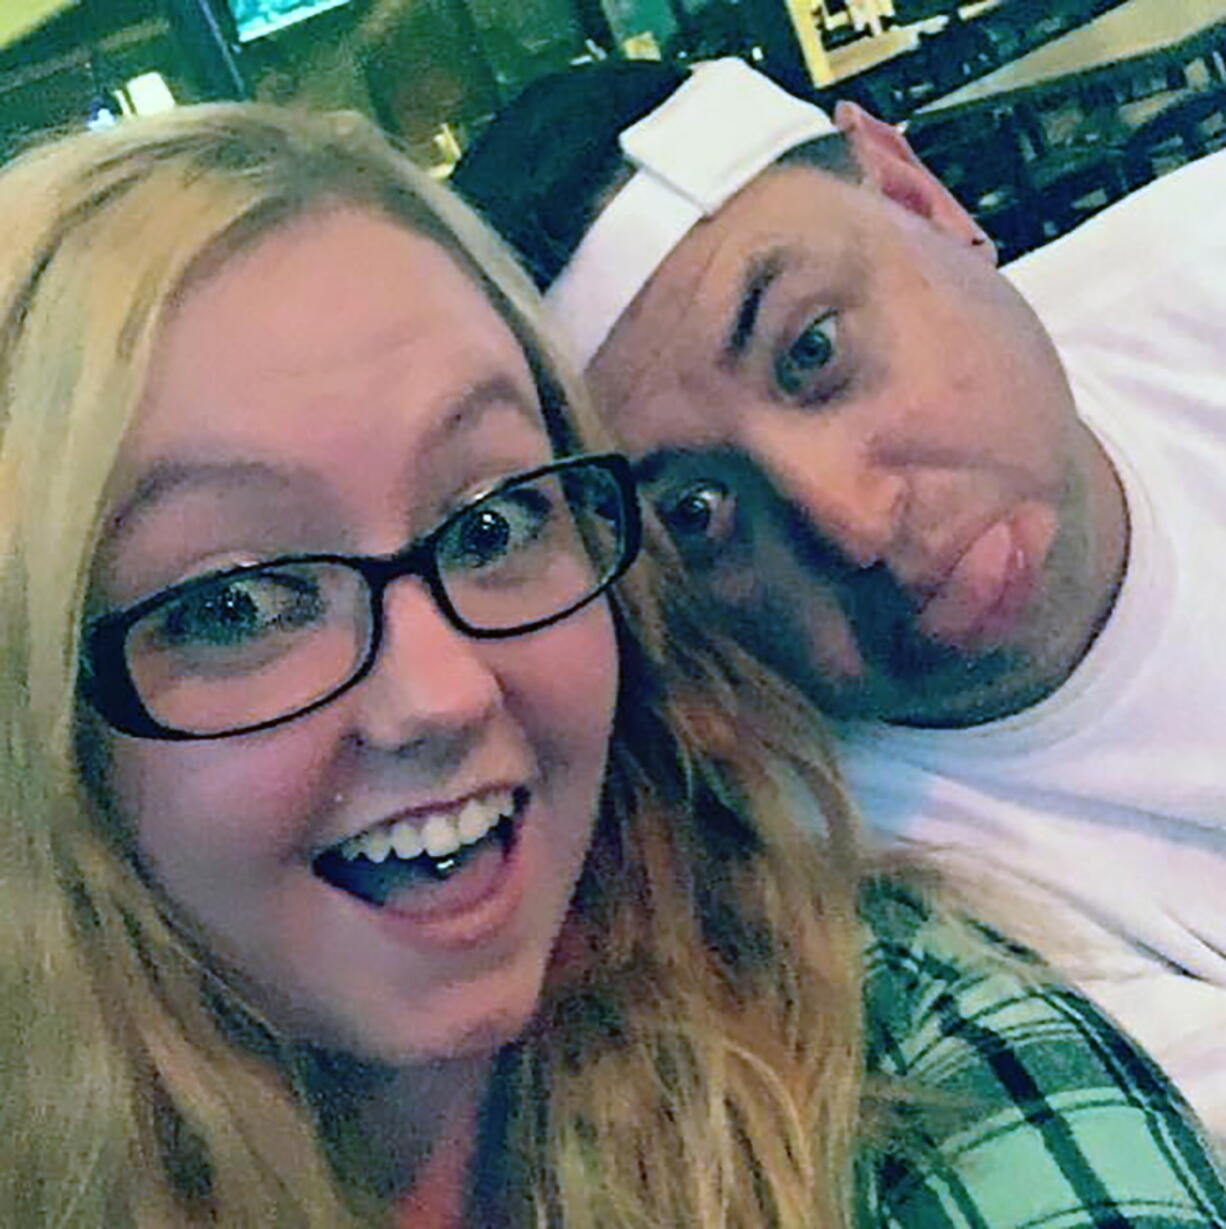 This 2013 photo provided by Robert Olds shows Rikki Olds, left, taking a selfie with her uncle Robert. Rikki Olds, 25, an employee of King Soopers, was slain Monday, March 22, 2021, in the supermarket shooting that killed multiple people in Boulder, Colo. Her grandmother choked up on the phone as she described the young woman she played a large role in raising.